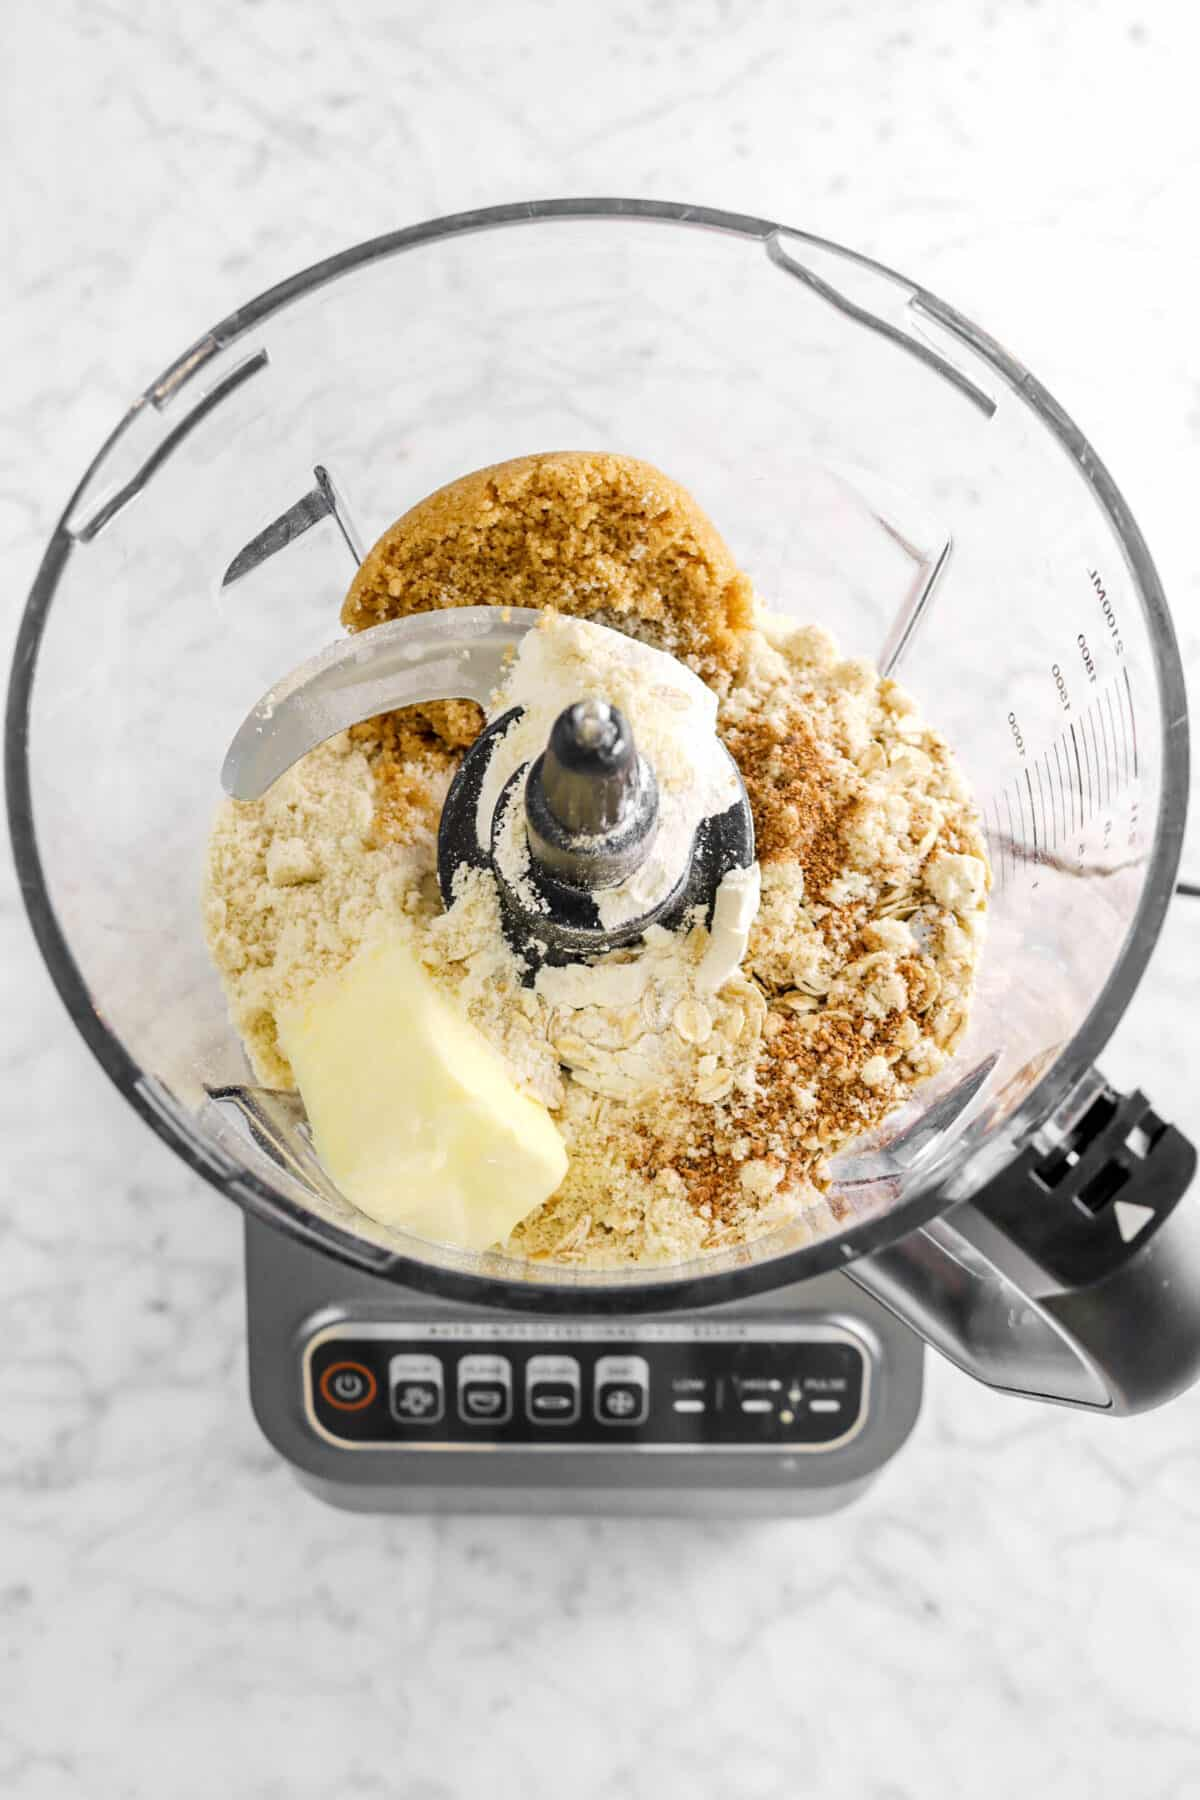 brown sugar, nutmeg, flour, almond flour, oats, and butter in food processor